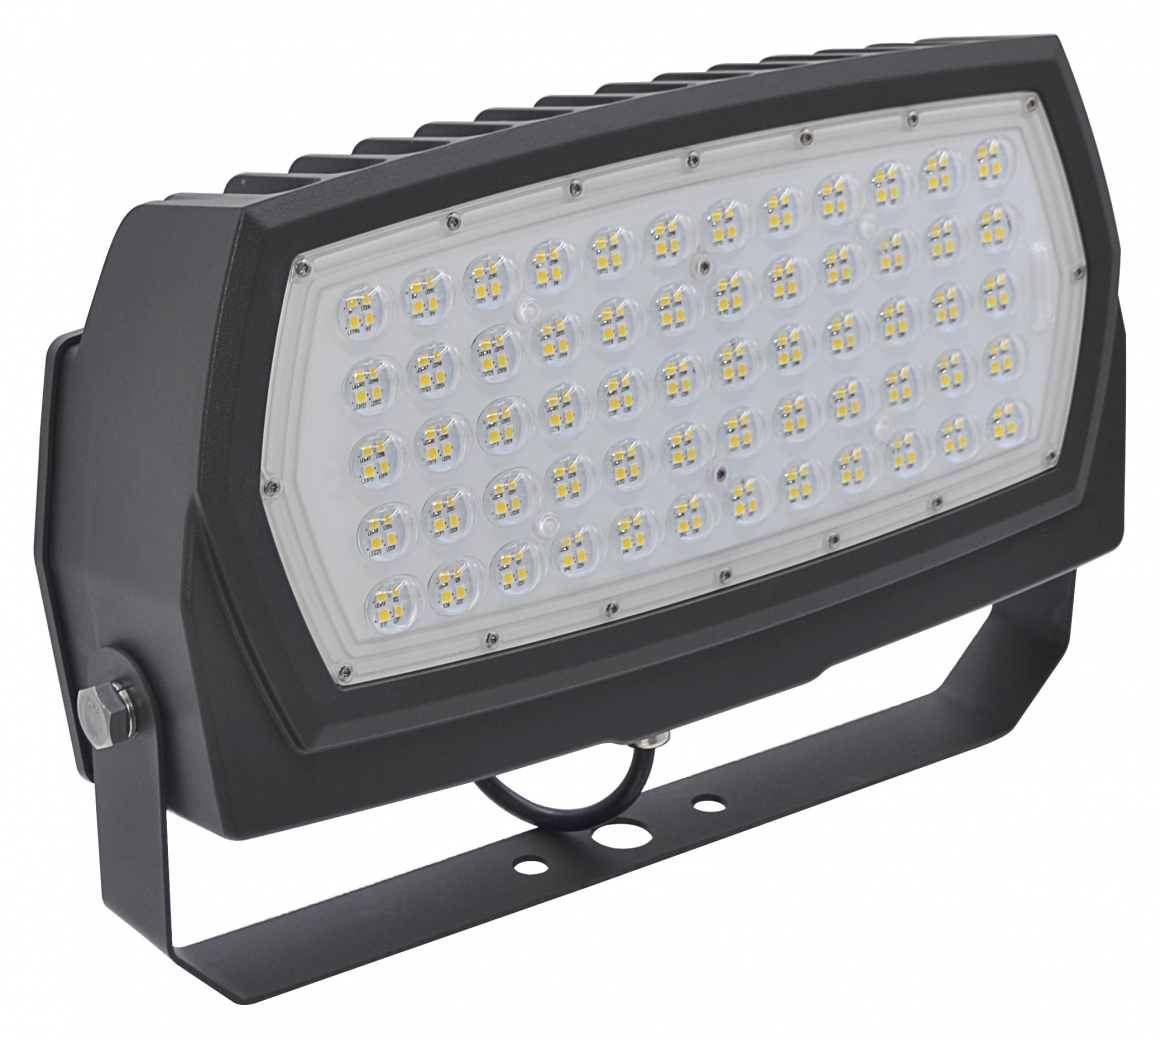 FL4/CL150BZ50U/YK 99674 LED EXTRA LARGE FLOOD 150W 5000K BRONZE 120-277V ARCH YOKE MOUNT